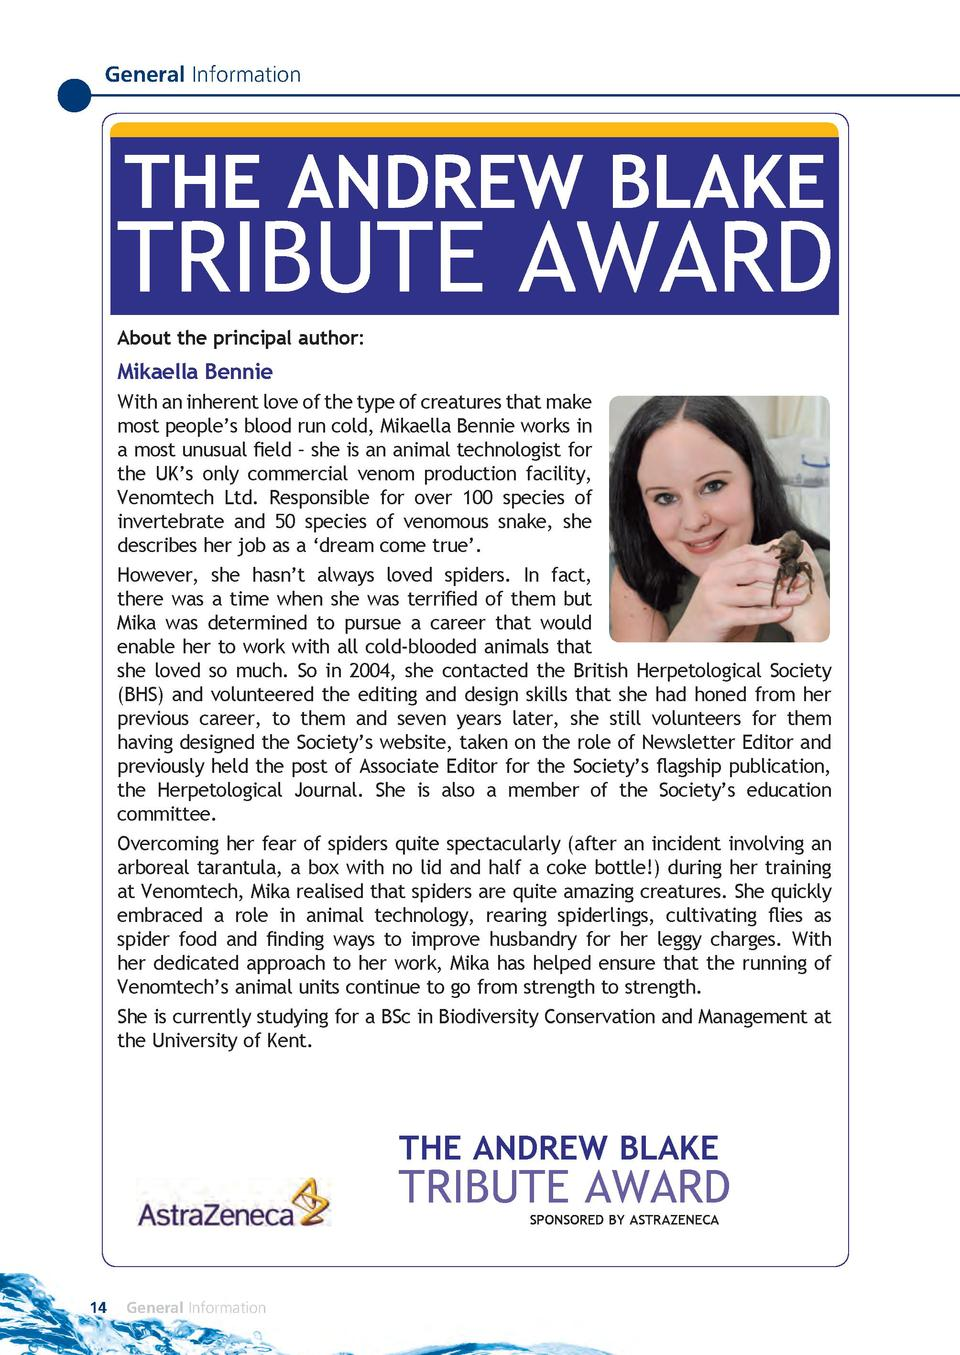 General Information  THE ANDREW BLAKE  TRIBUTE AWARD About the principal author   Mikaella Bennie With an inherent love of...